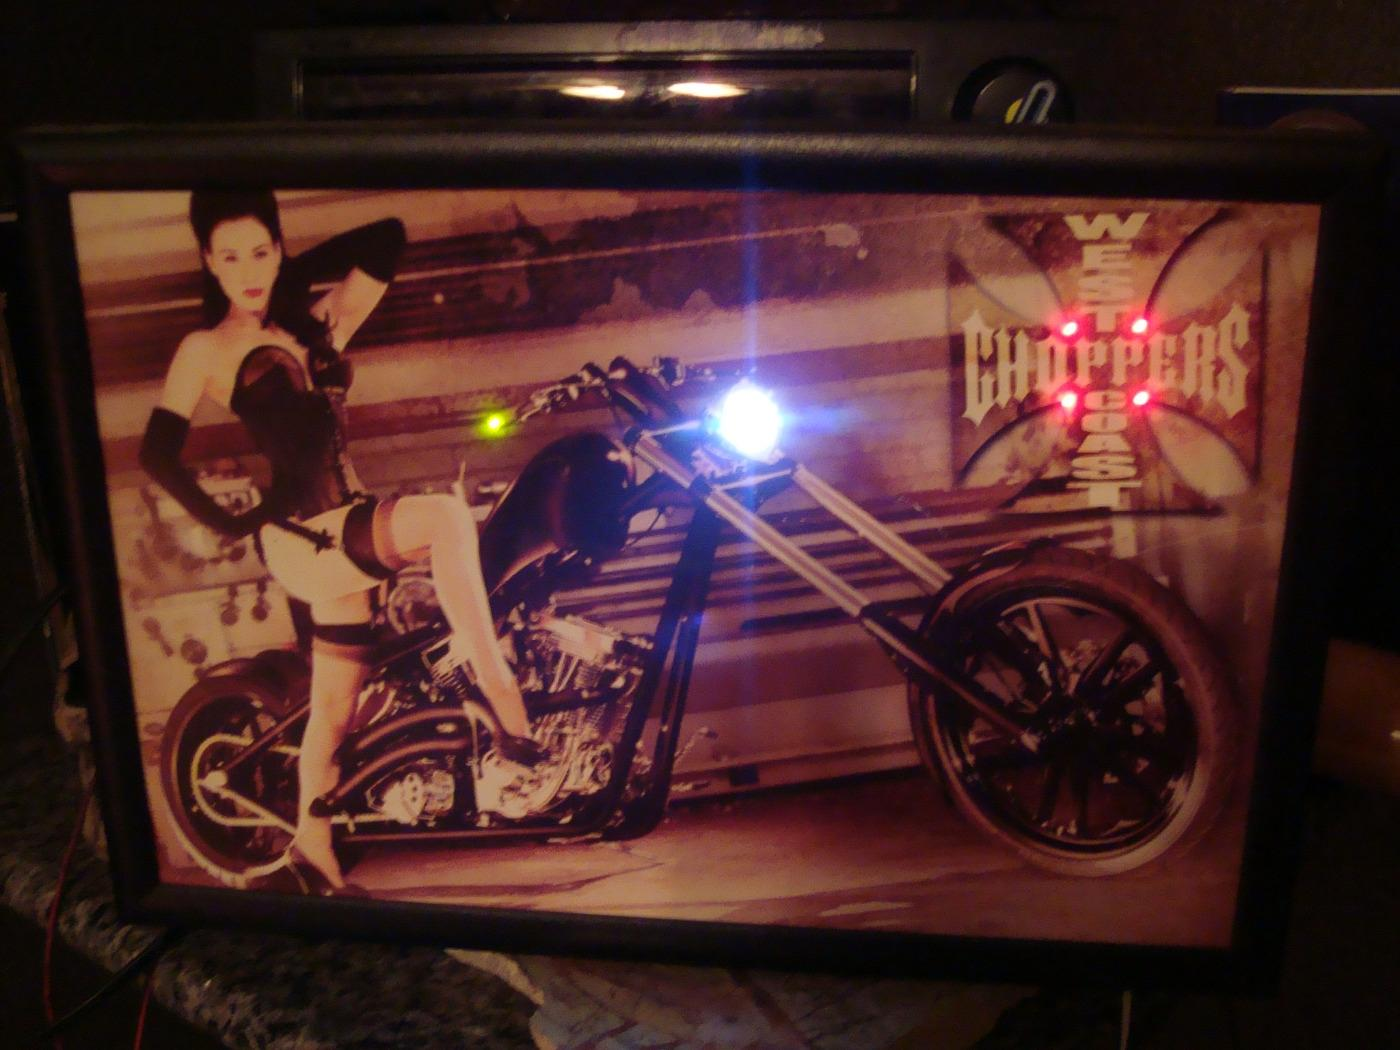 West Coast Choppers LED picture 13x19   make offers!